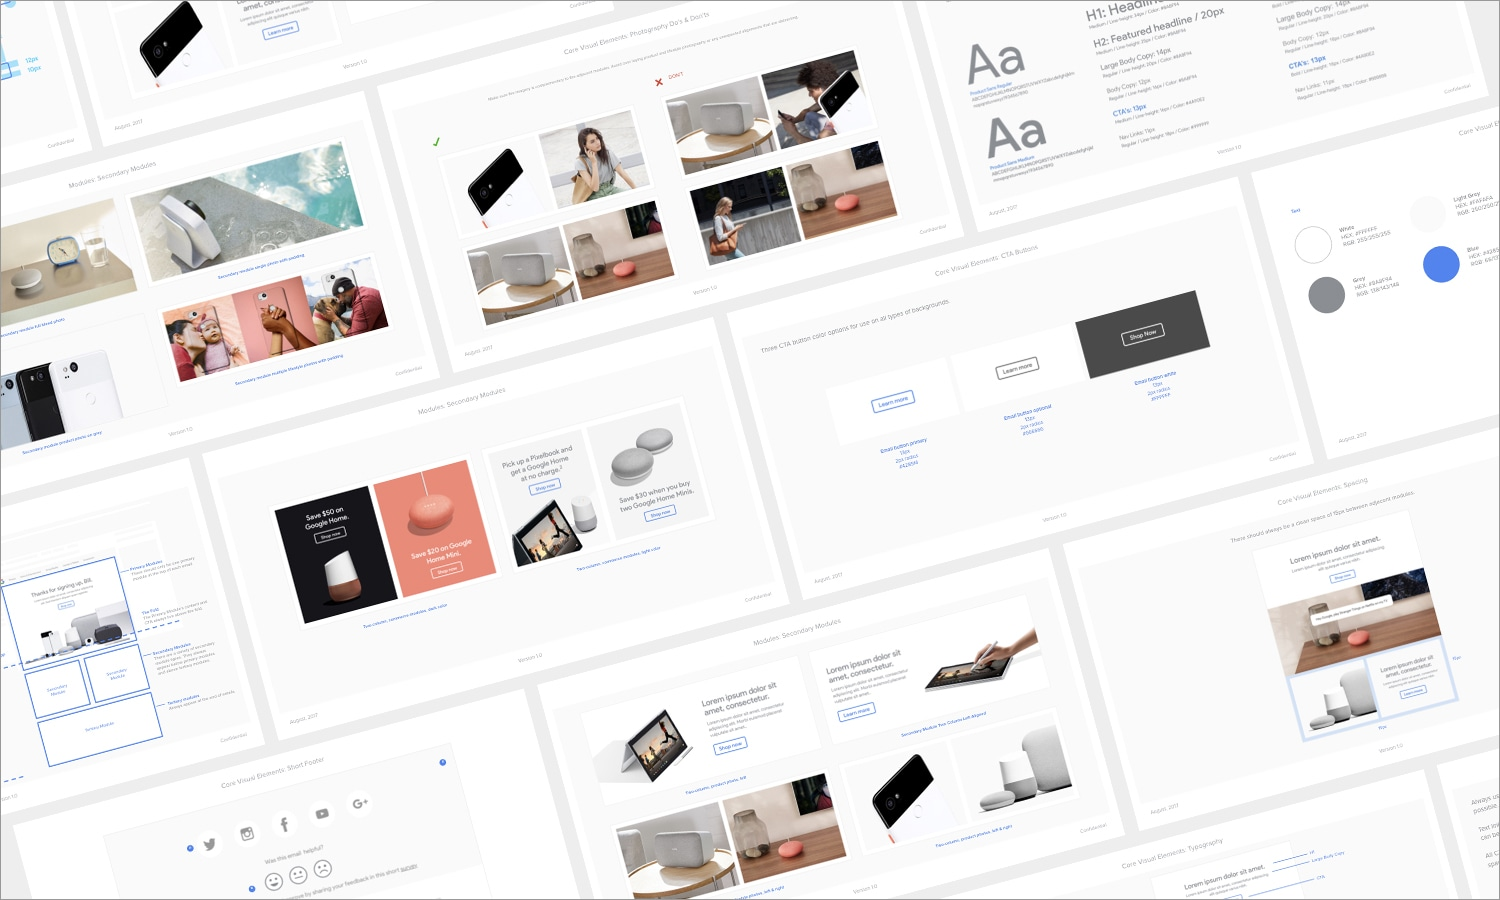 Google Store email and digital ad style guides